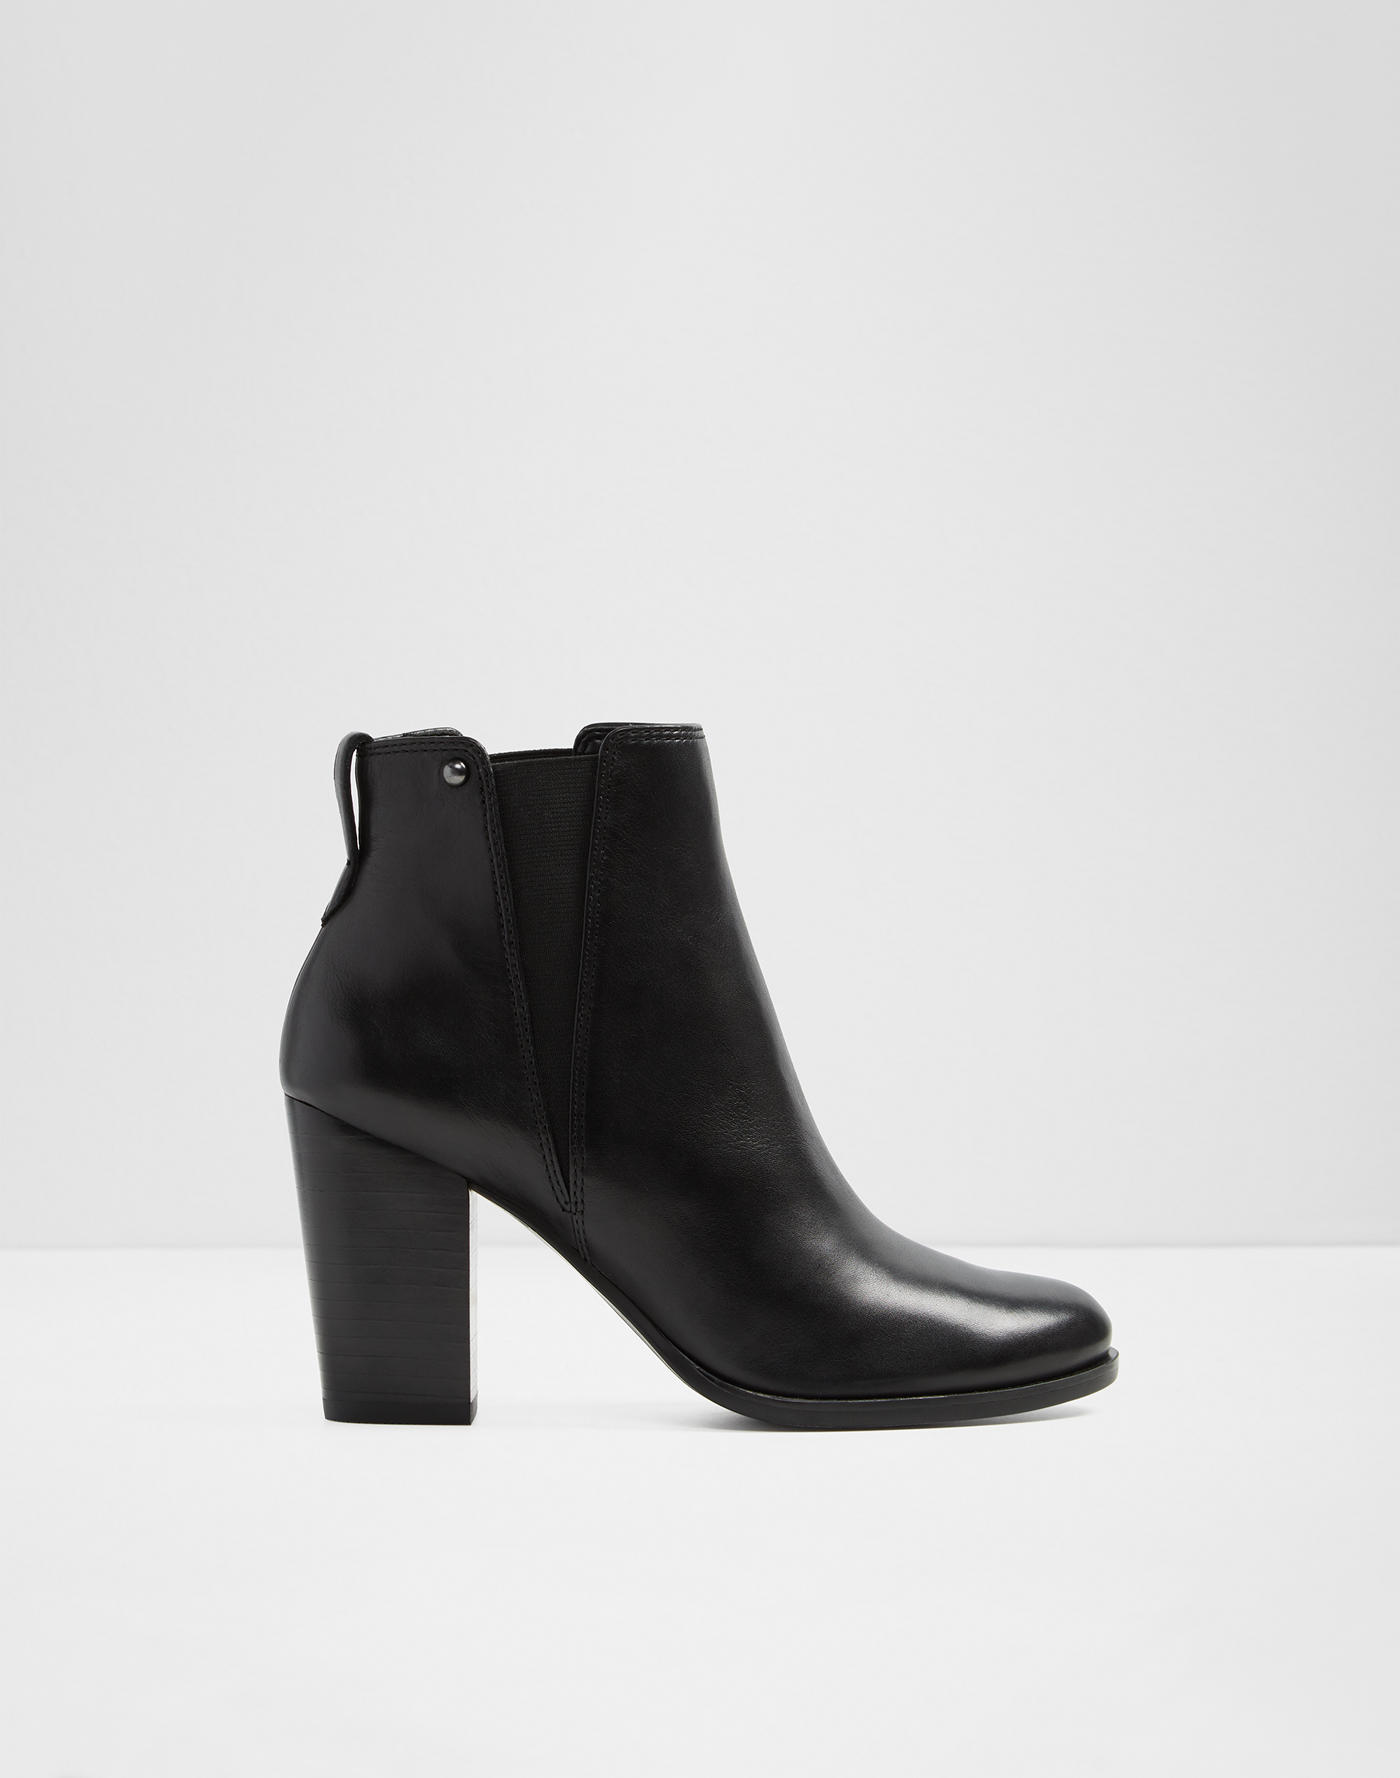 3a4bfccb4f7 Ankle boots | ALDO Canada